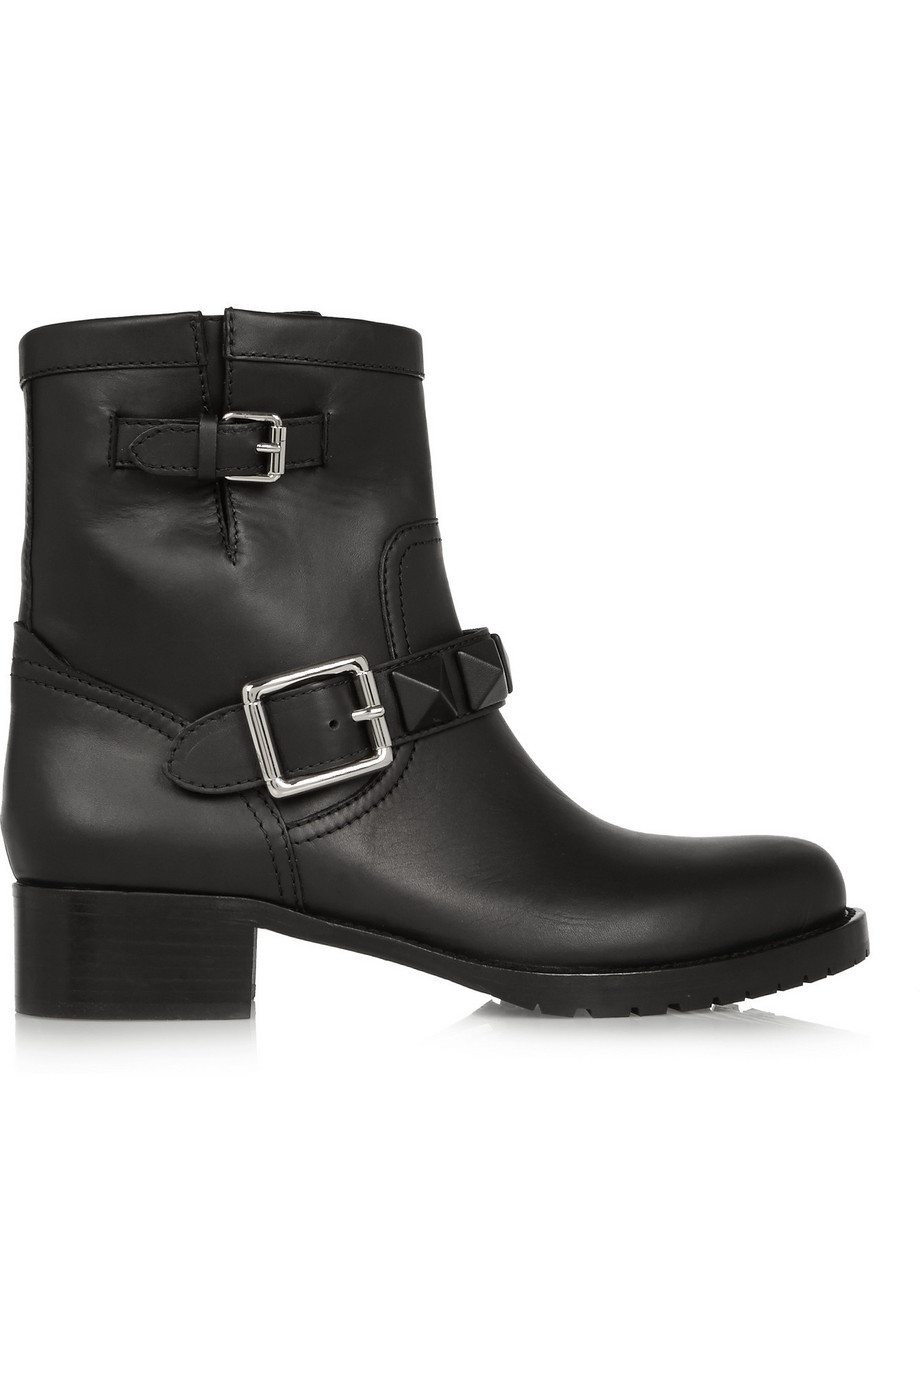 Valentino Lock Leather Biker Boots, Black, Women's US Size: 4.5, Size: 35